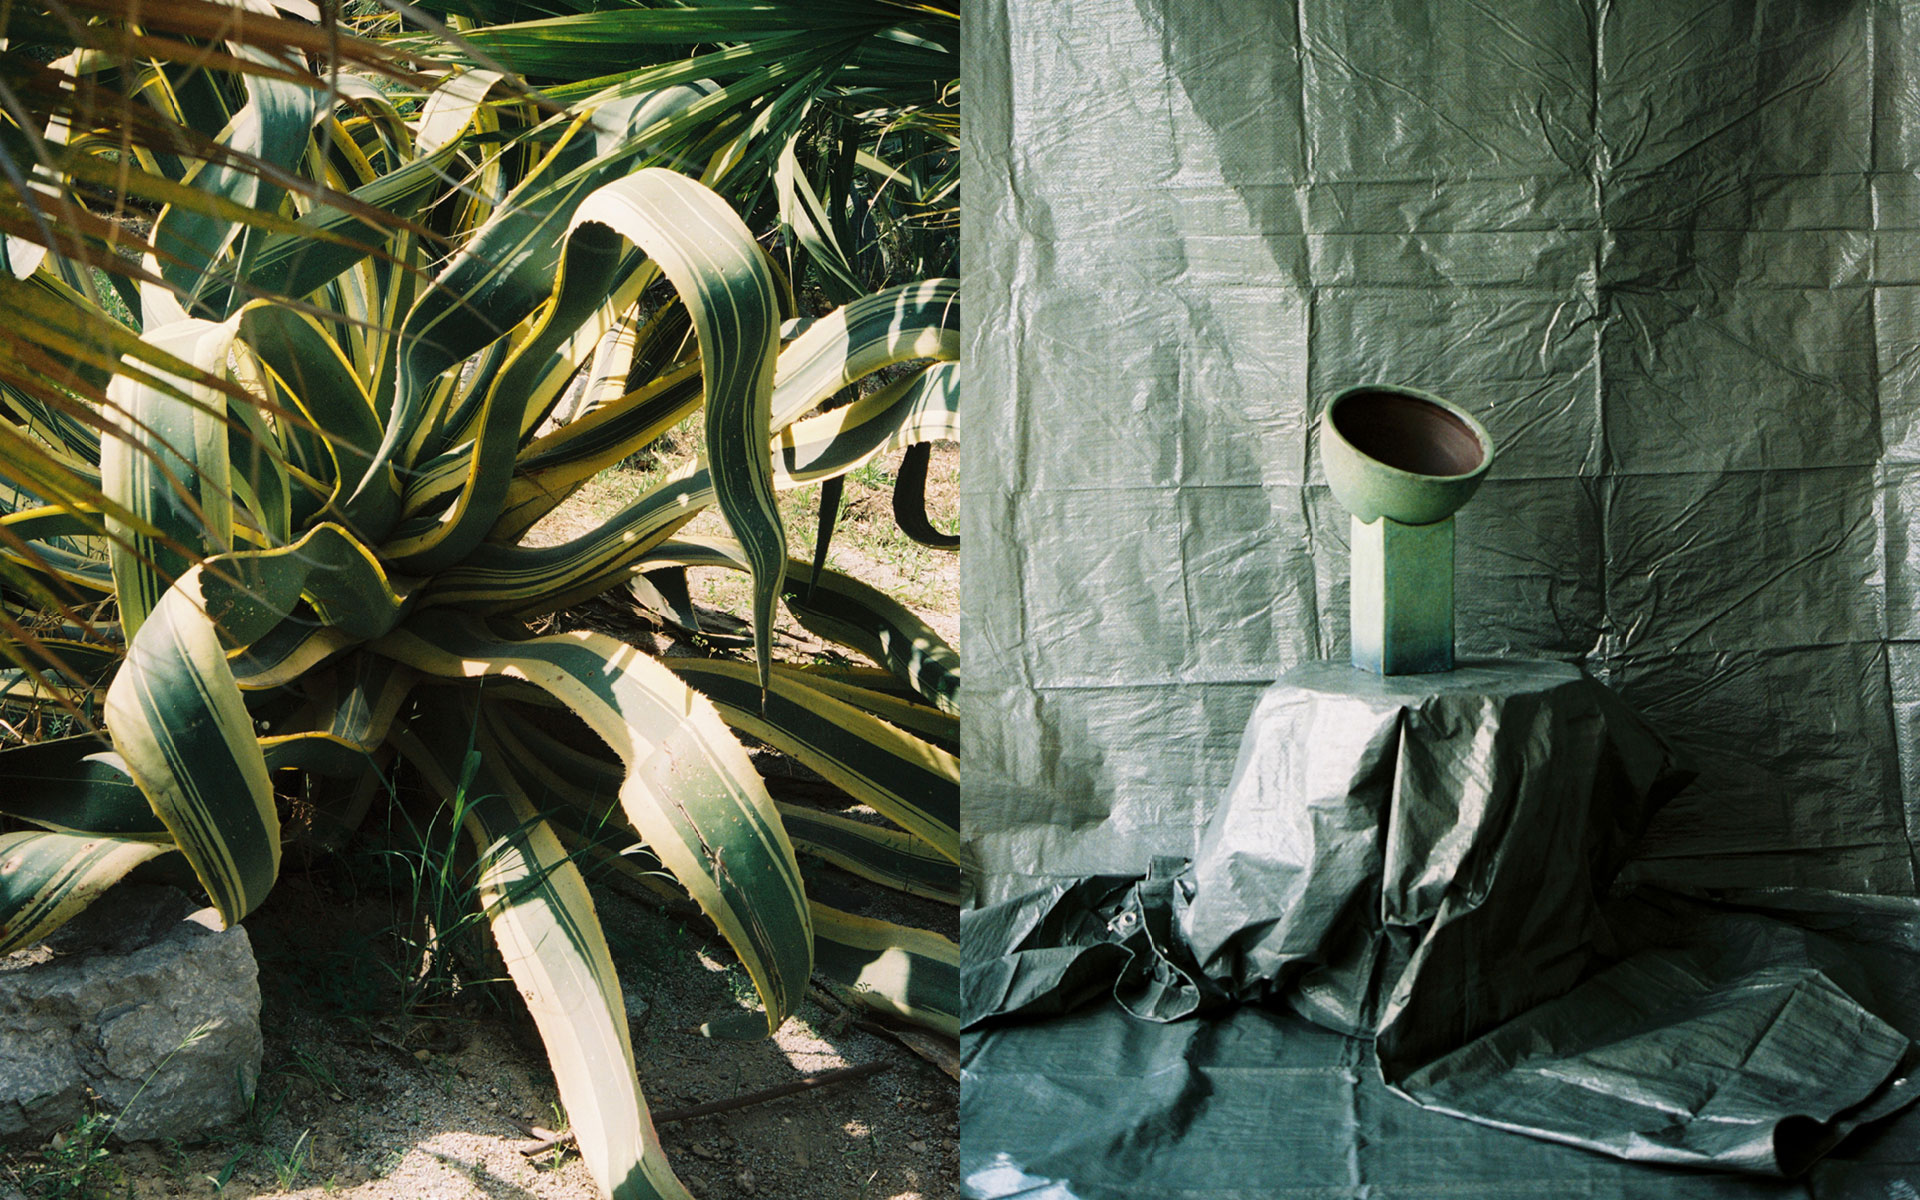 The-Aesthetic-Other-Plantage-11.jpg